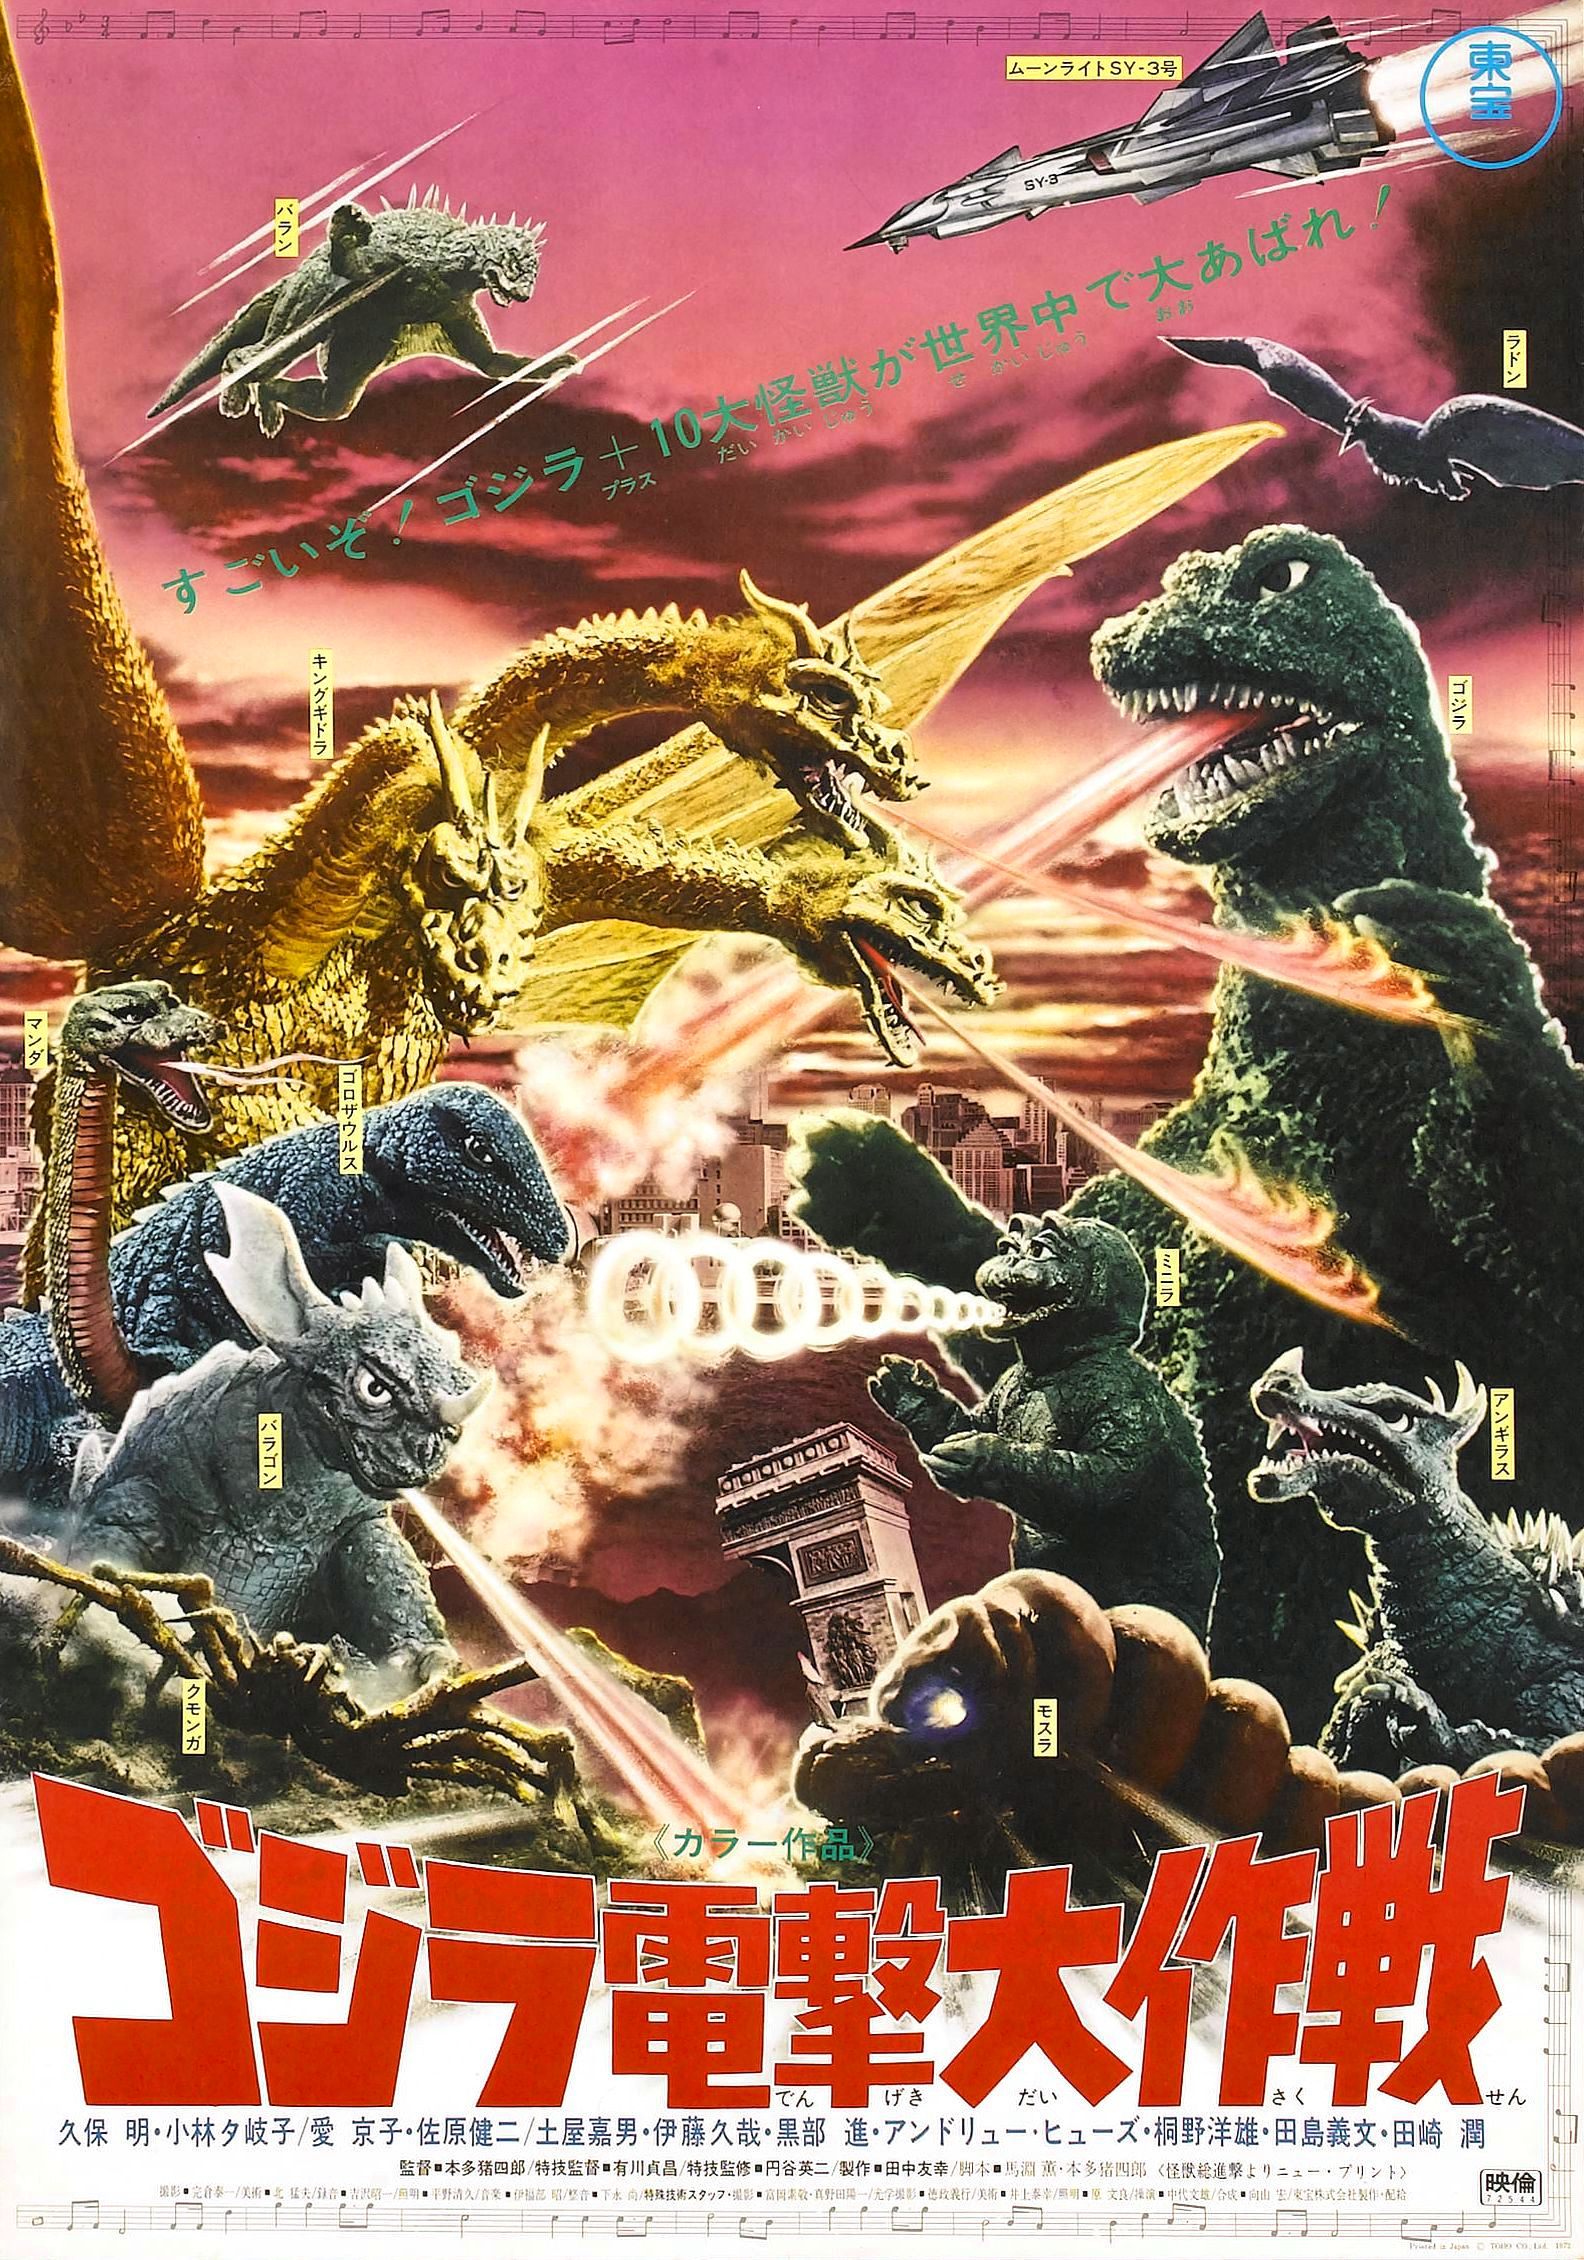 destroy_all_monsters_poster_1968_02.jpg